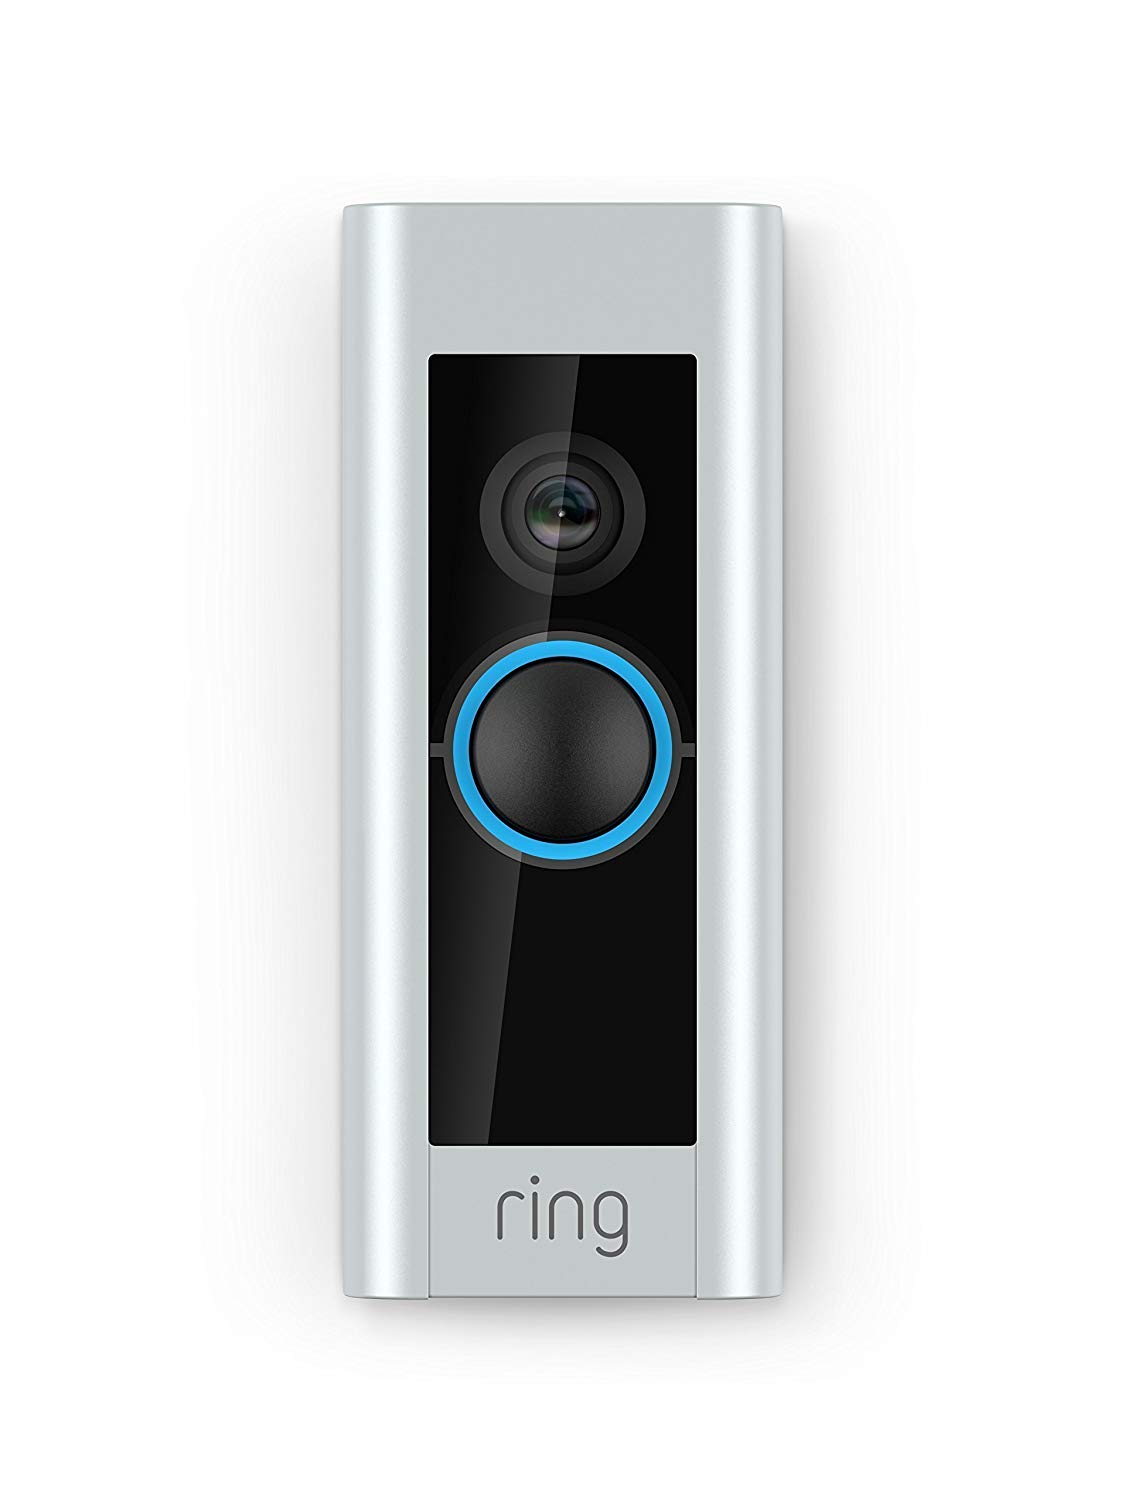 Ring DoorBell Pro for $180 and DoorBell 2 for $130 with 12 Month Ring Protect Plus at Costco.com, Free S/H, Costco Member Only $130